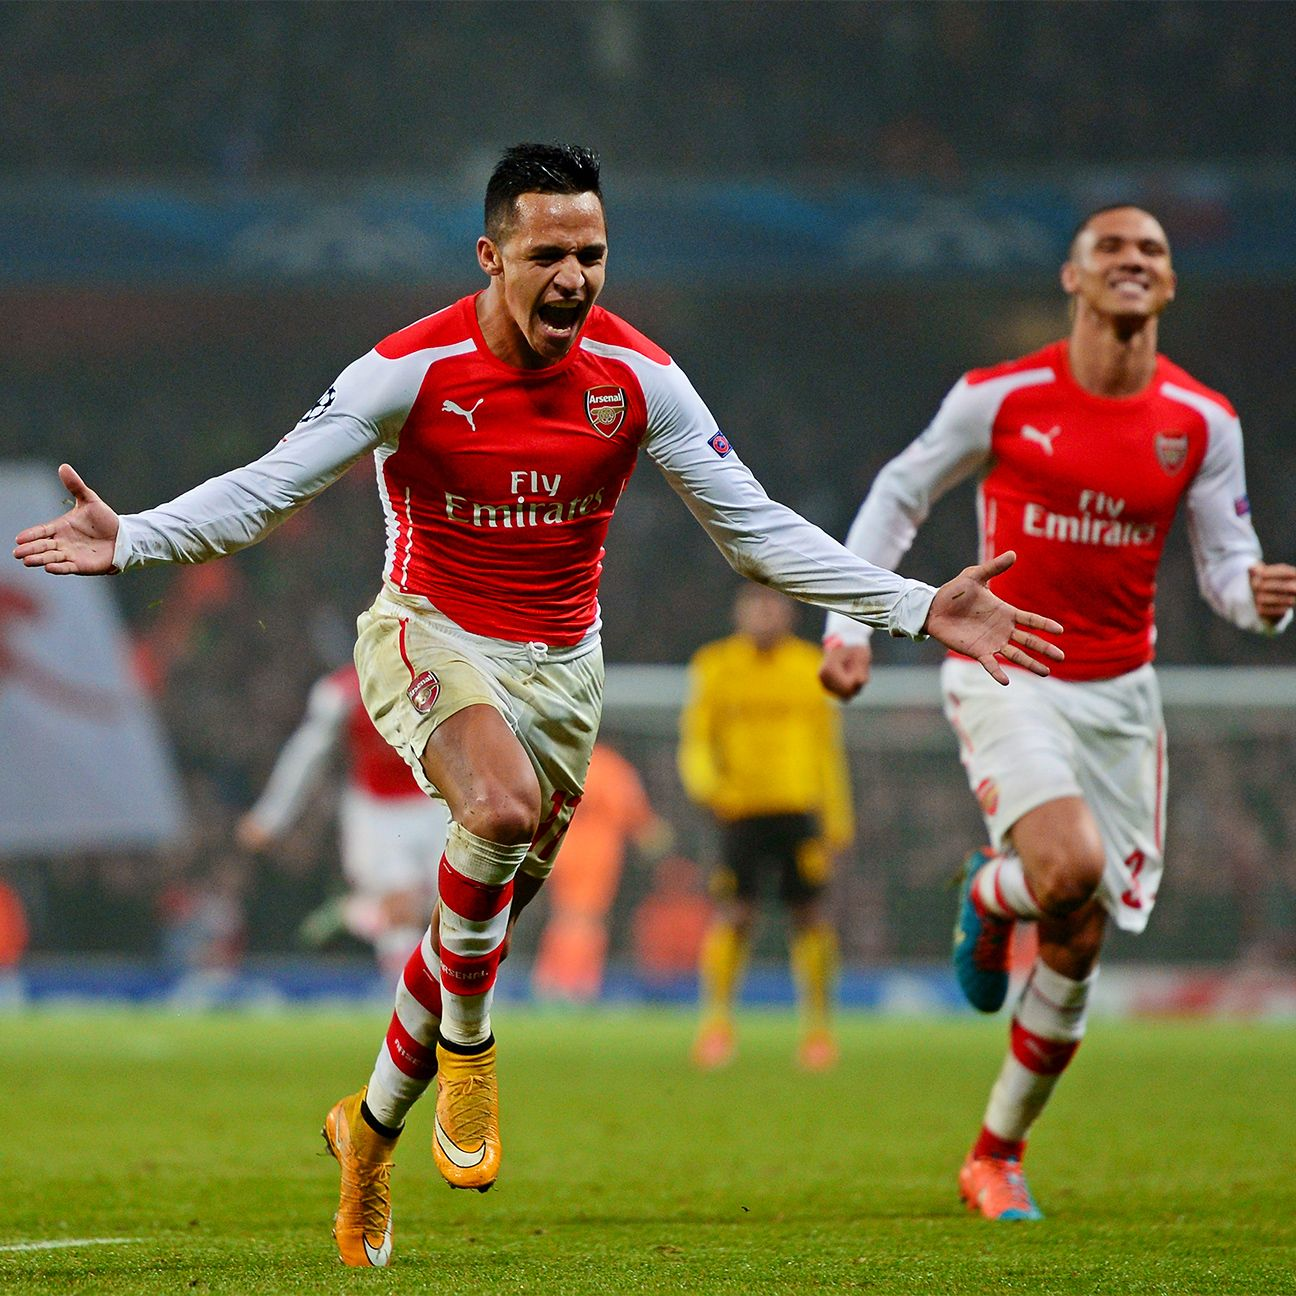 Alexis Sanchez, who's tallied nine goals and five assists this season, leads the charge for Arsenal.